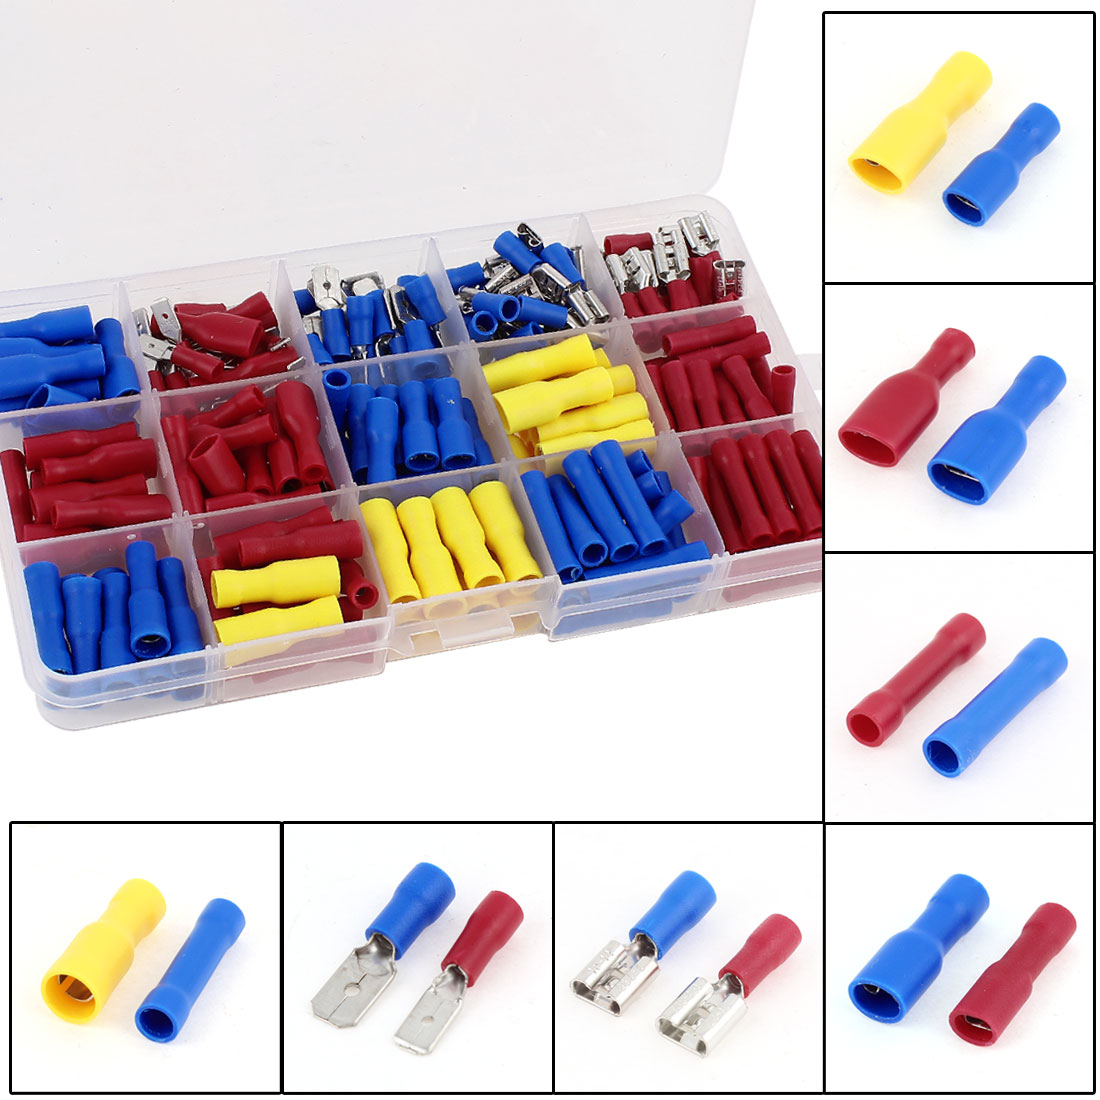 230Pcs Insulated Electrical Wire Connector Spade Crimp Terminal Assortment Kit